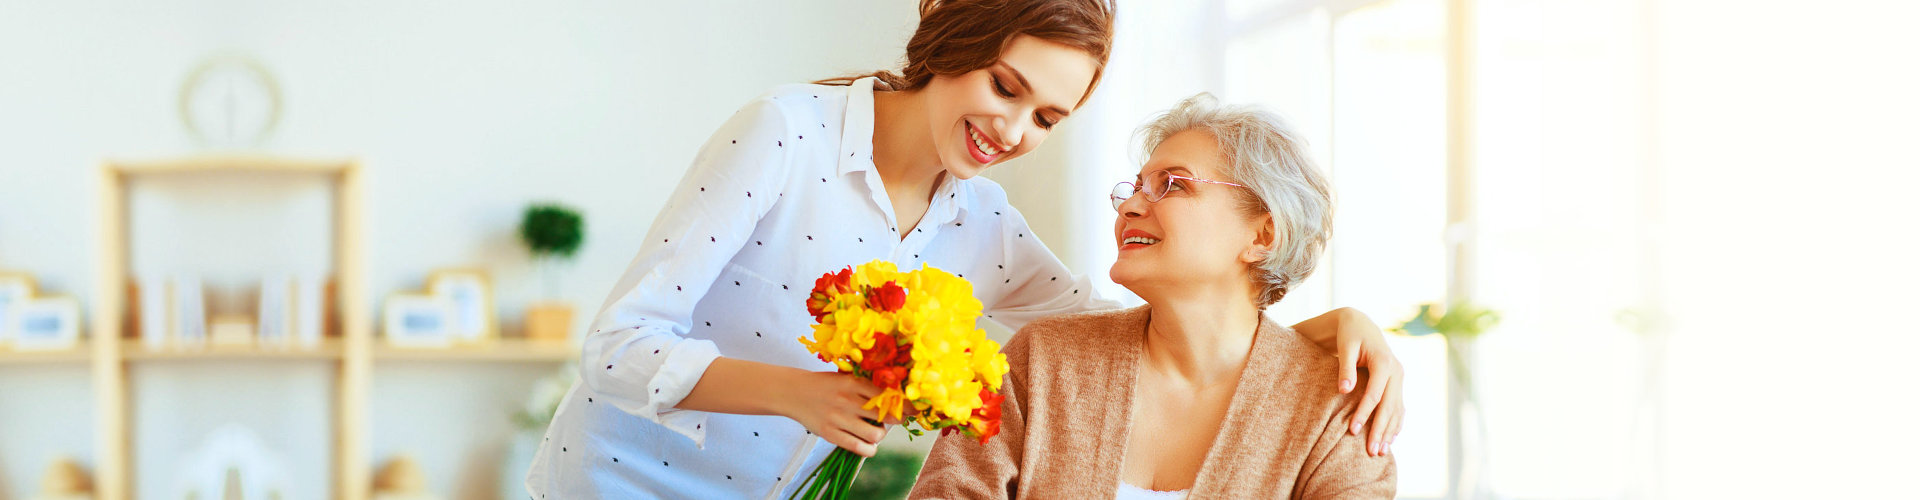 senior woman with young woman